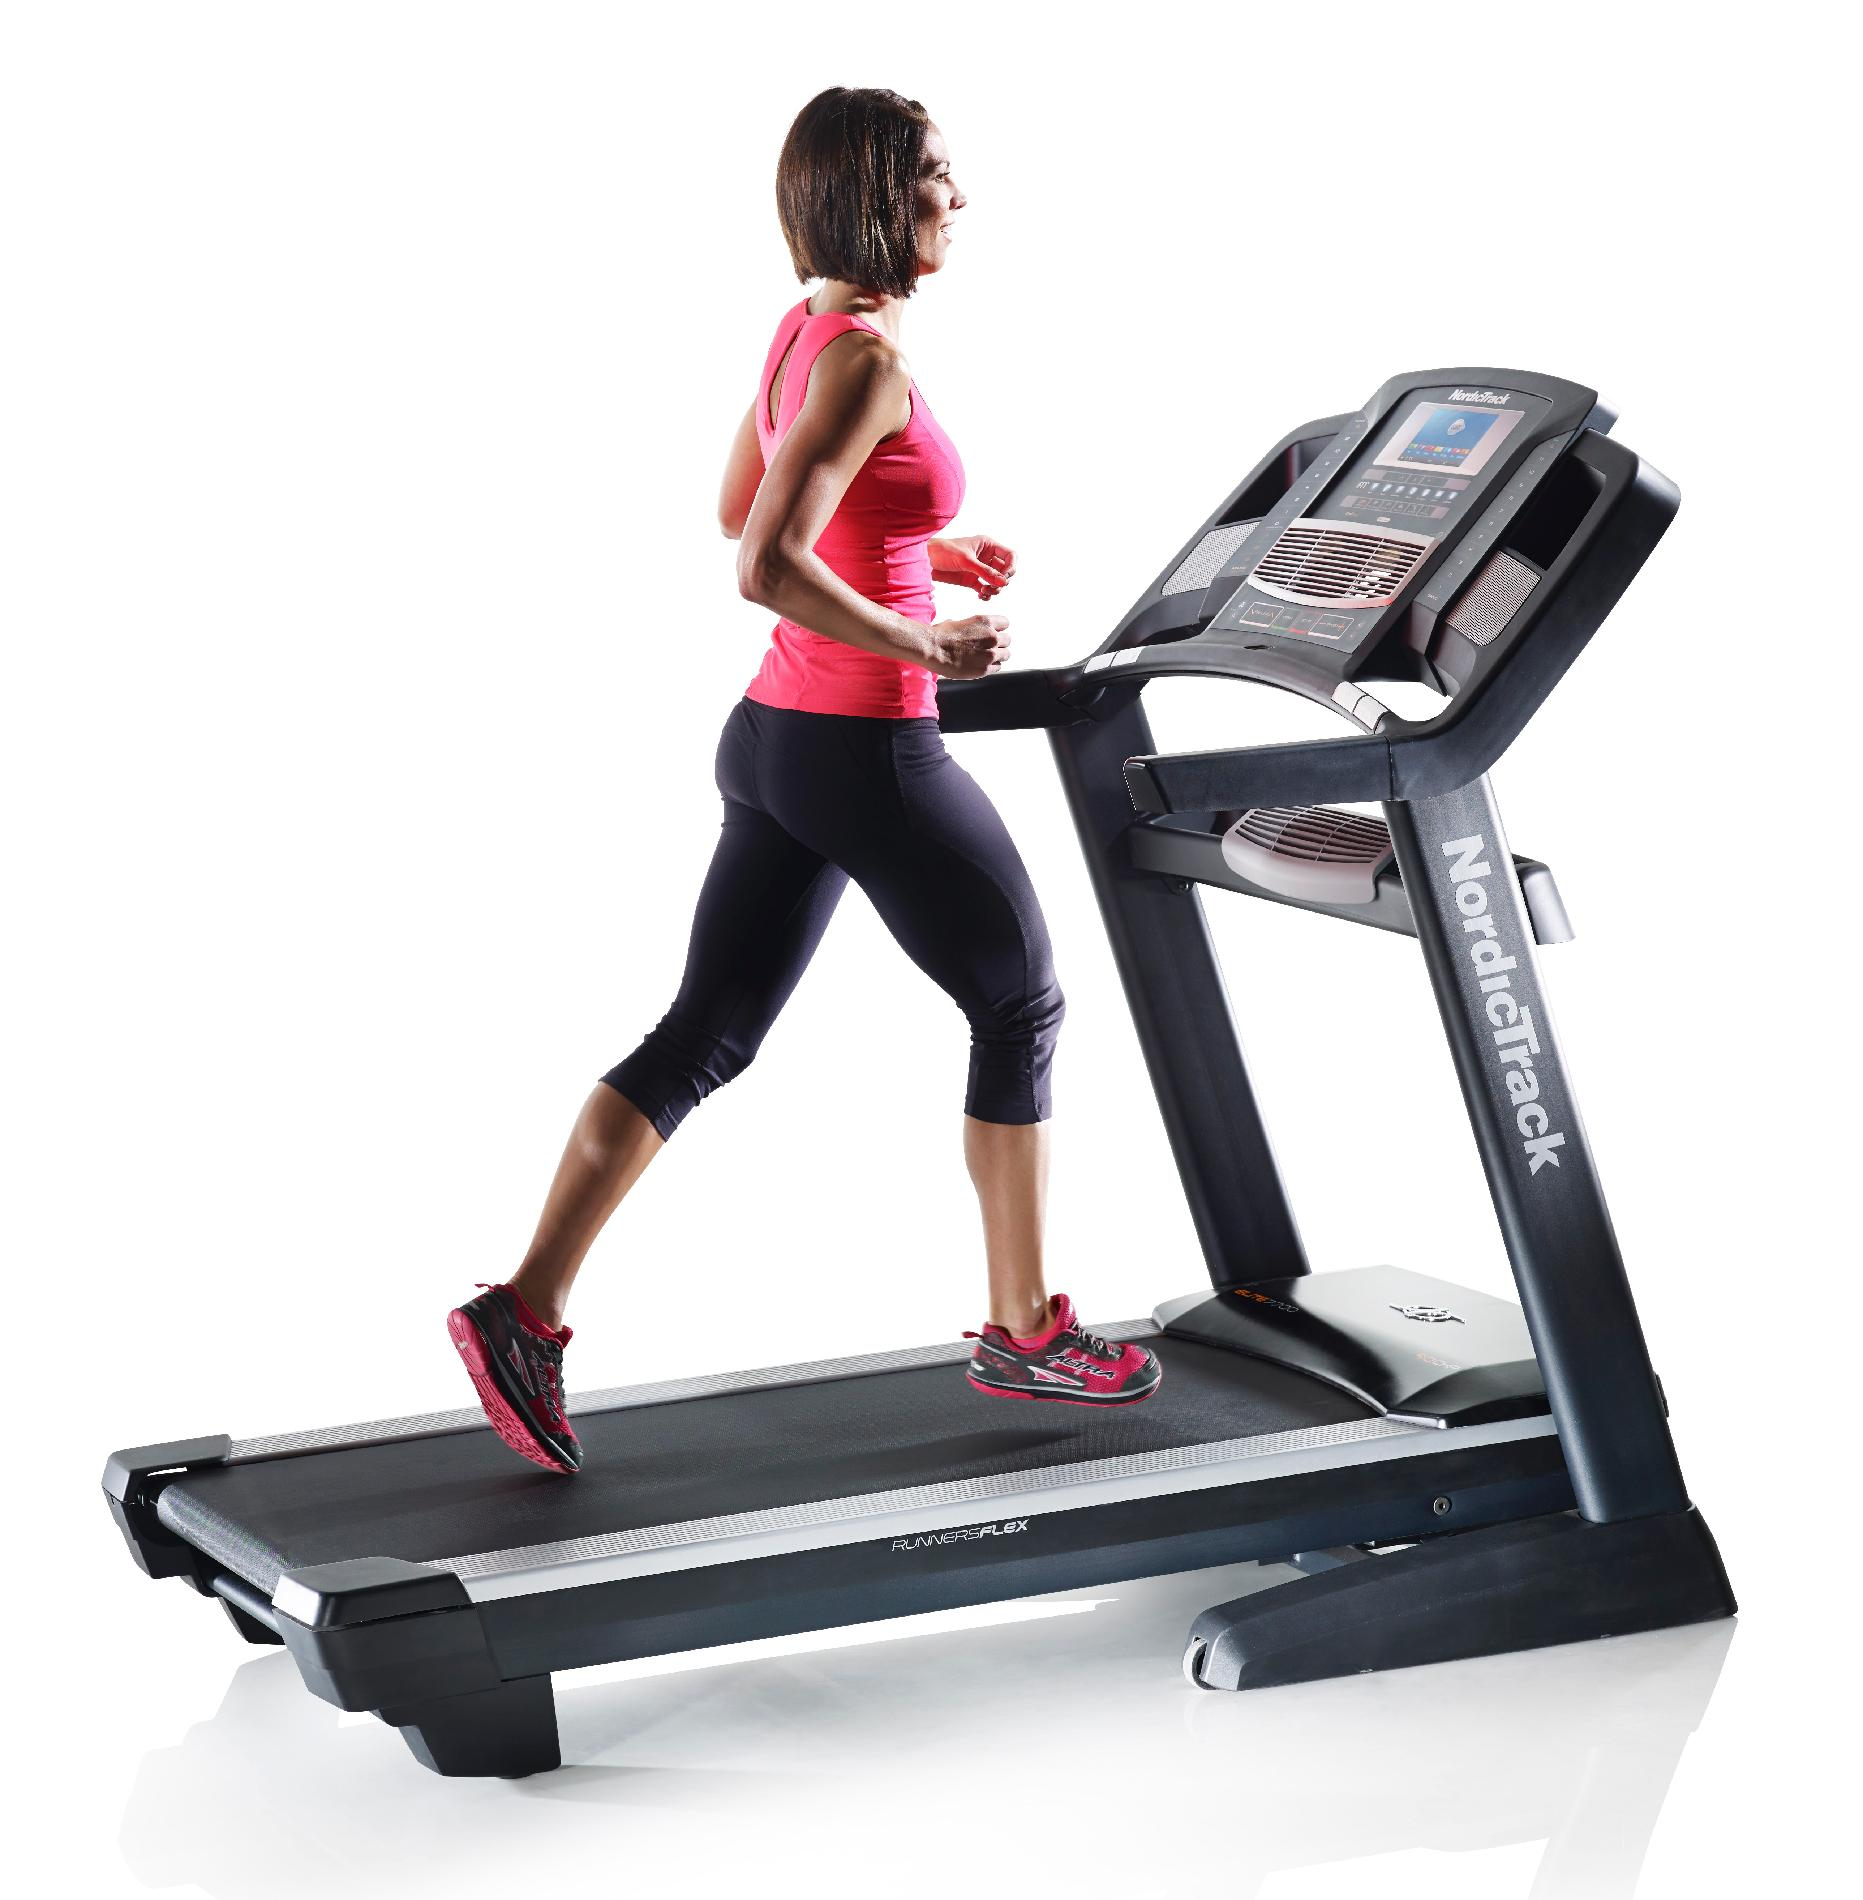 NordicTrack Elite 5700 Treadmill